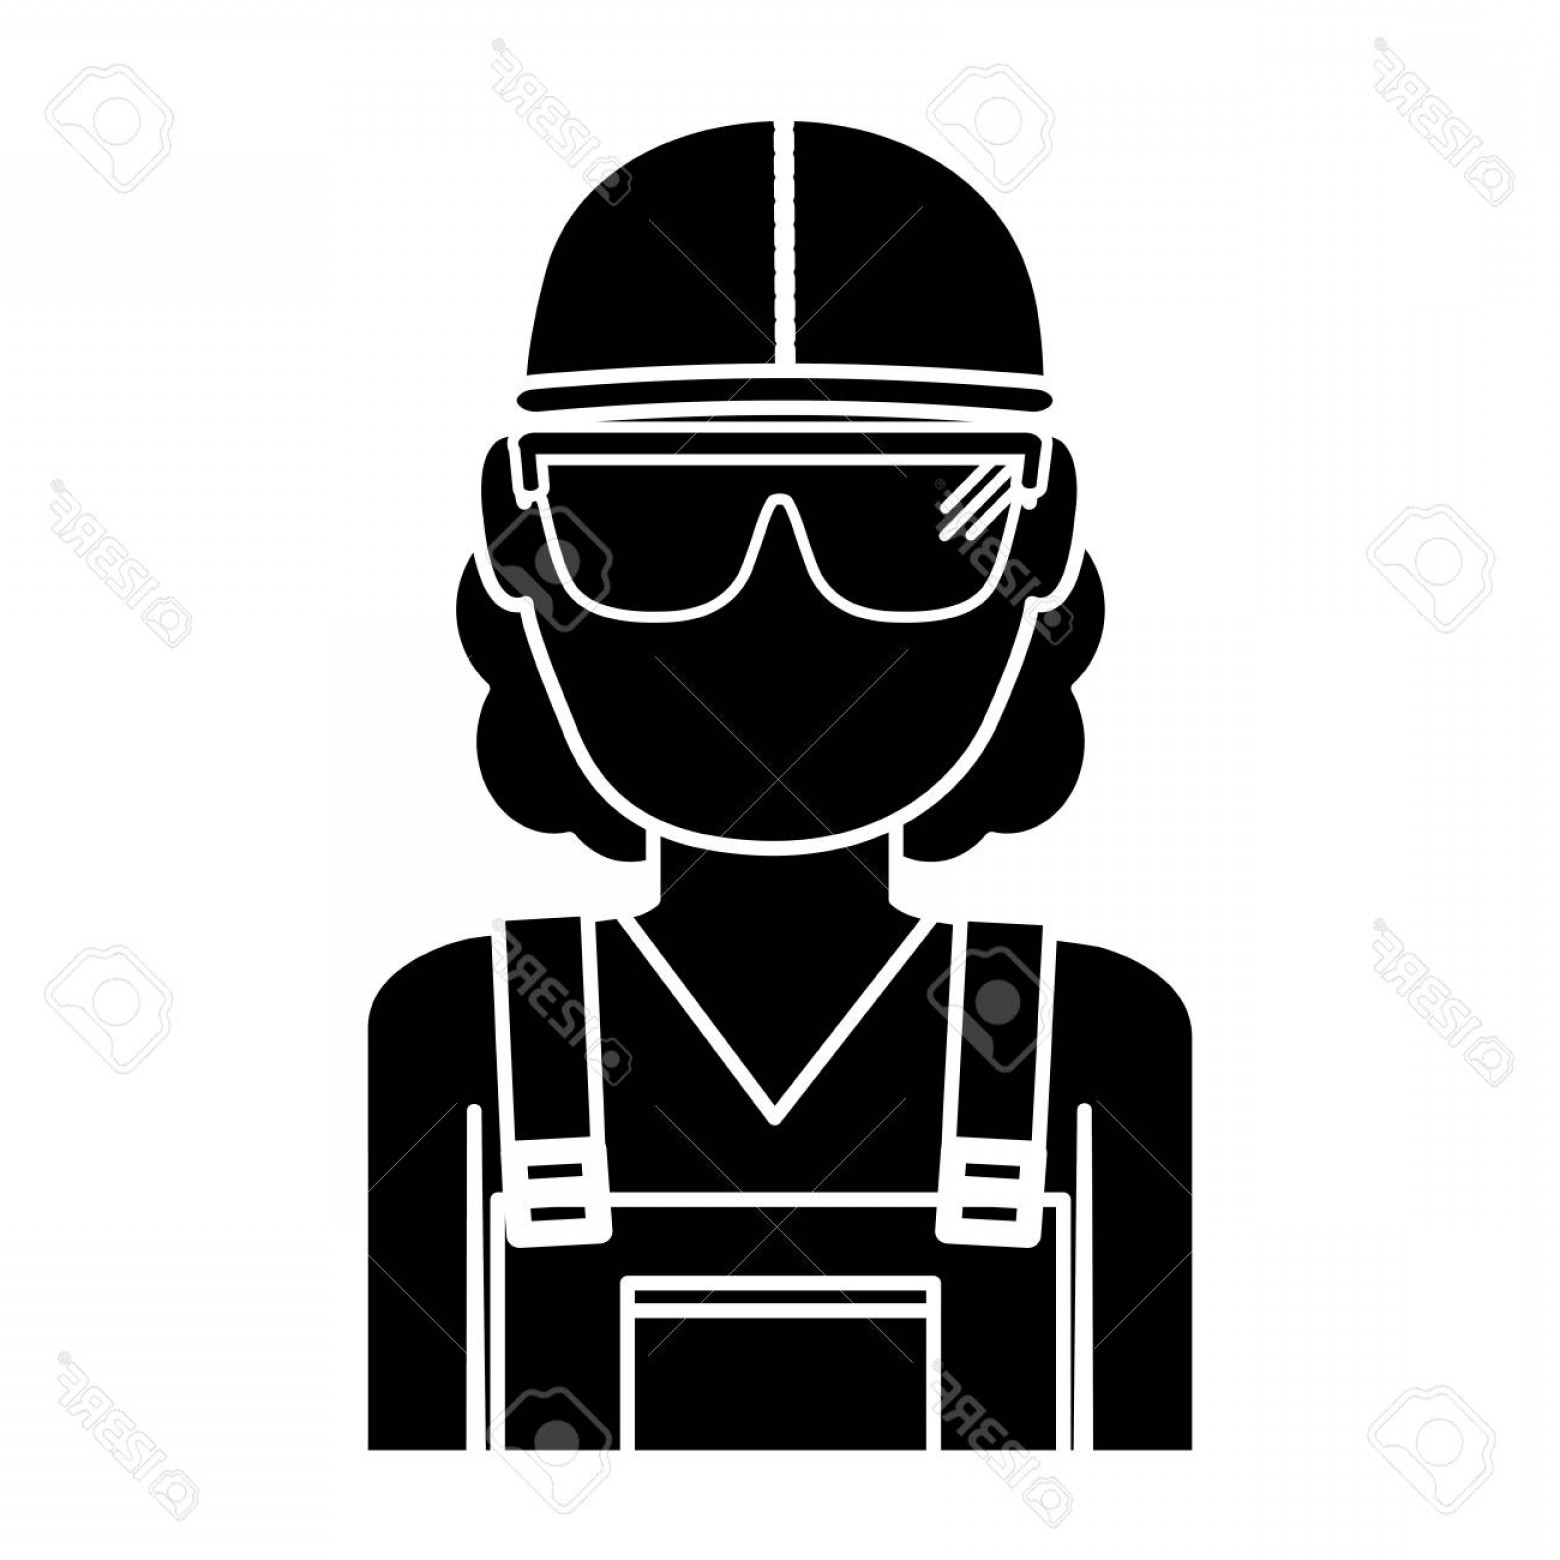 Construction Safety Goggles Vector: Photostock Vector Construction Worker With Safety Goggles And Helemt Icon Over White Background Vector Illustration